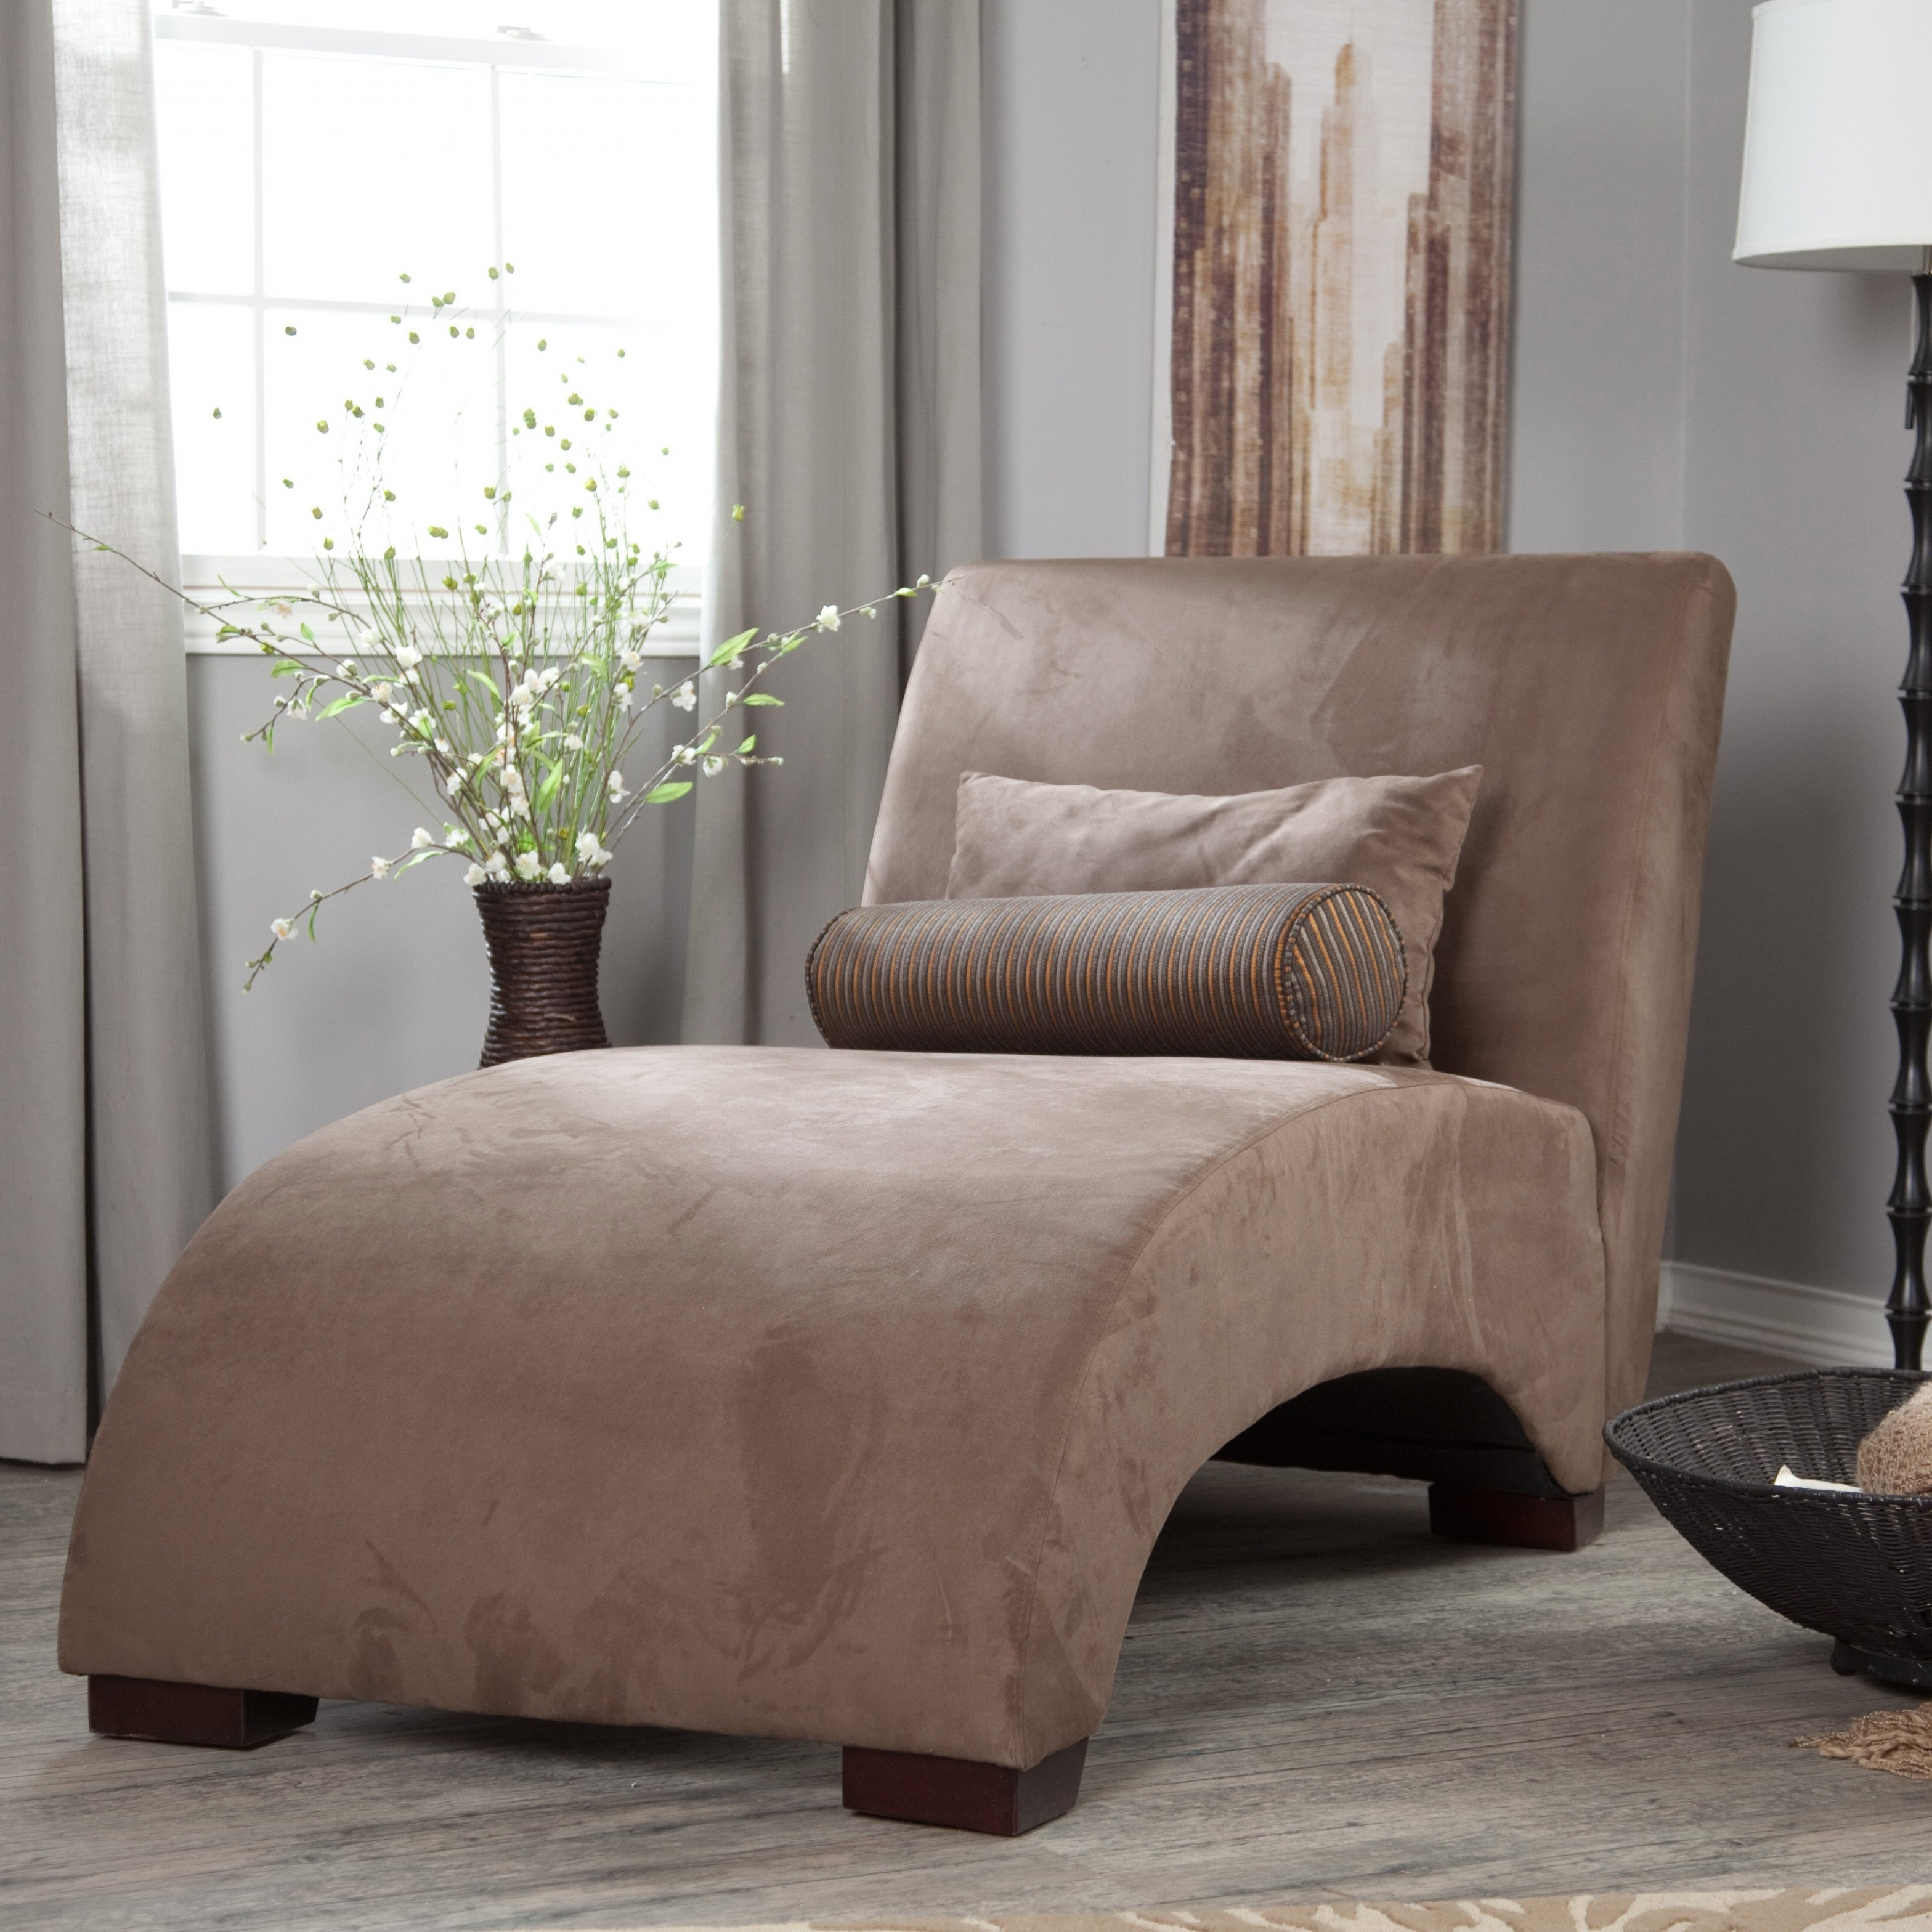 Well Known Narrow Chaise Lounge Chairs Within Home Decor: Chairs (View 15 of 15)